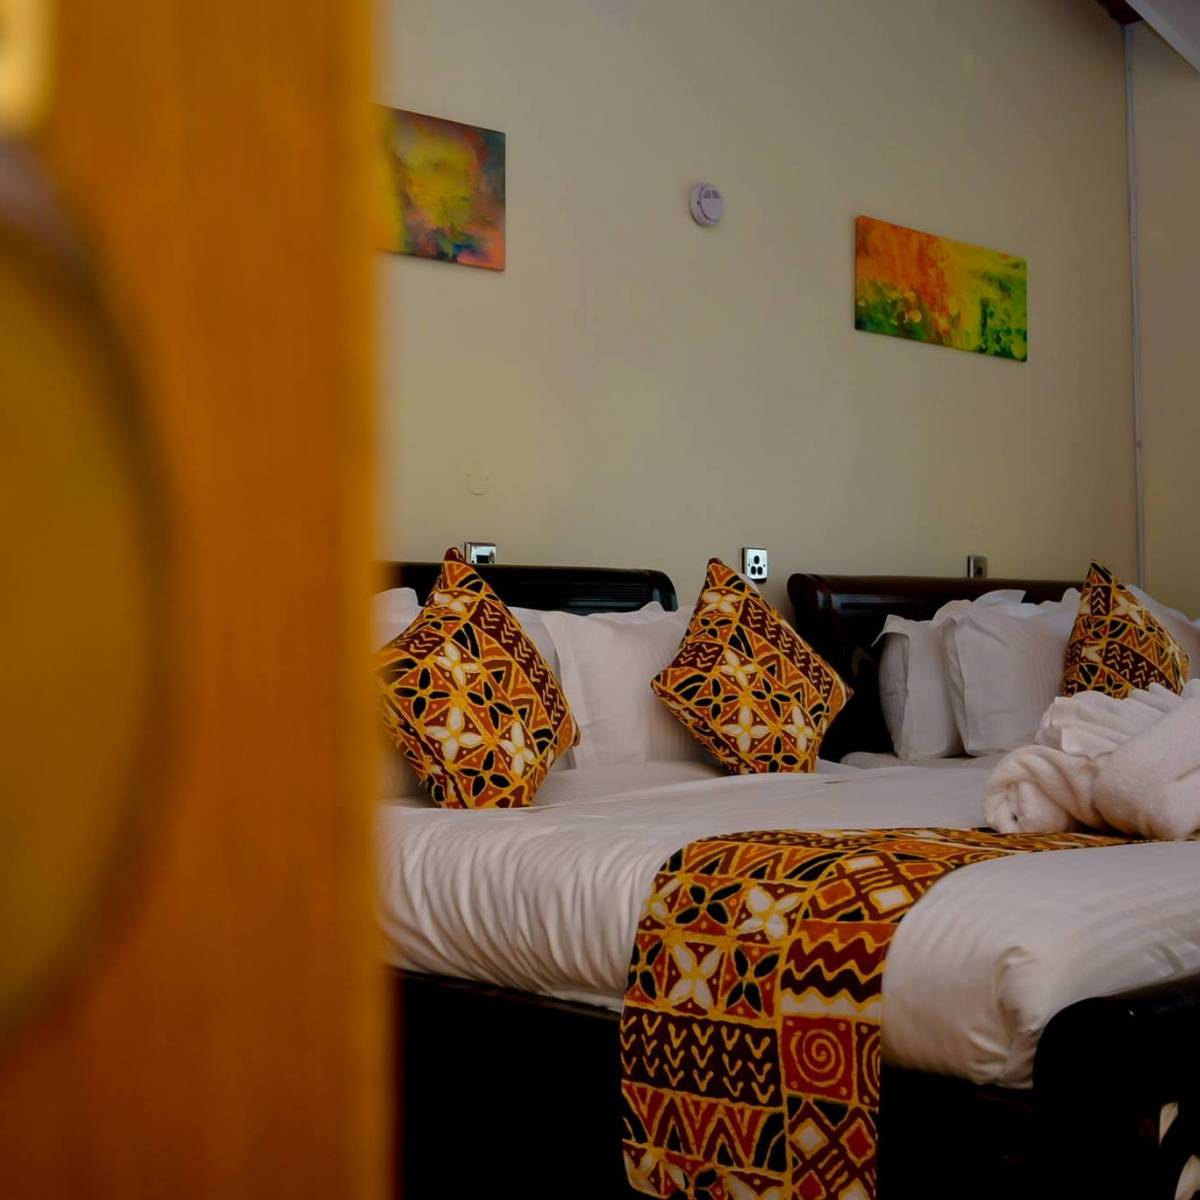 Camellia Guest House, Westlands, Kenya, hostels, backpacking, budget accommodation, cheap lodgings, bookings in Westlands